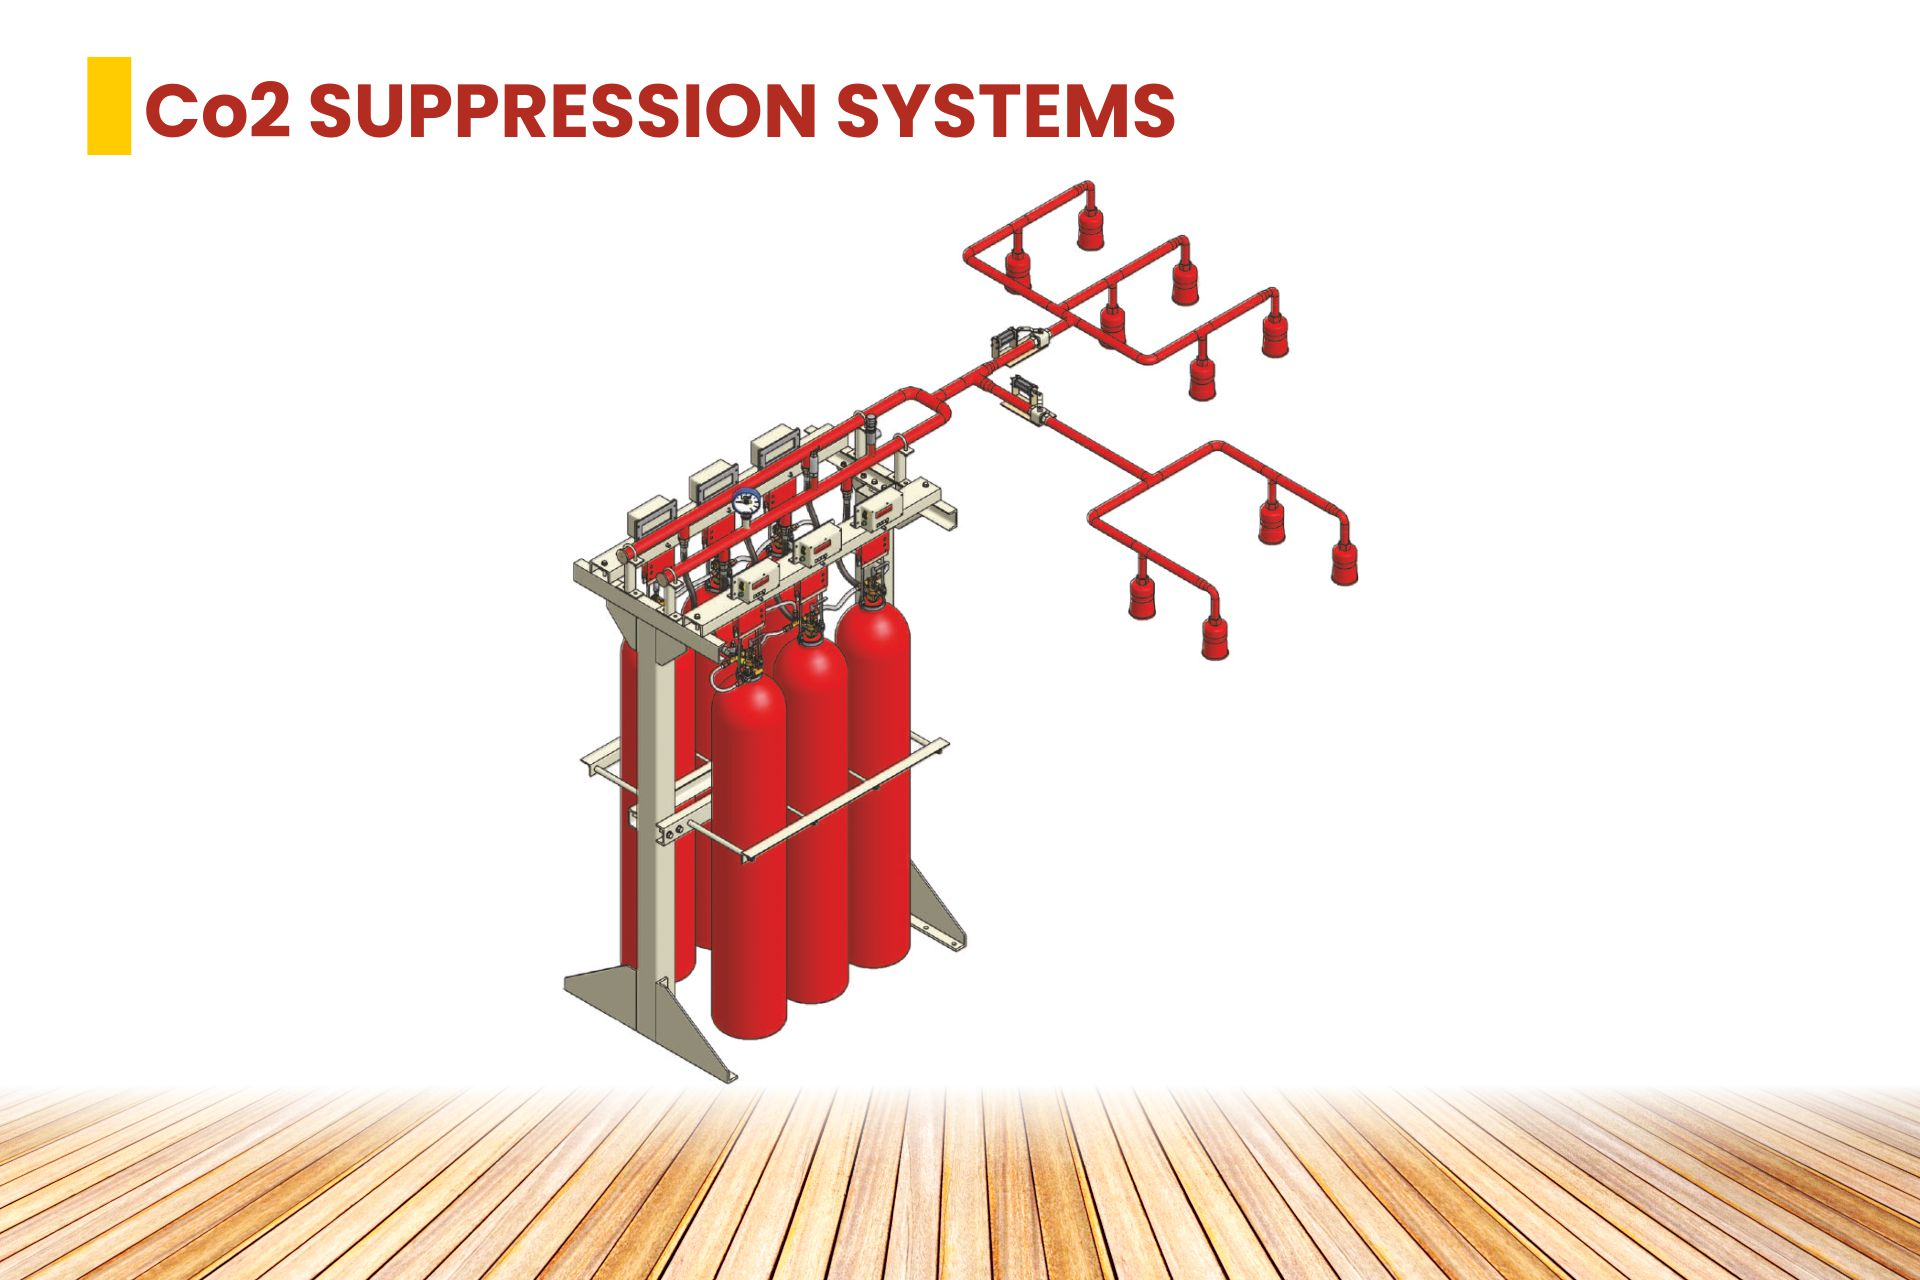 Co2 SUPPRESSION SYSTEM Product